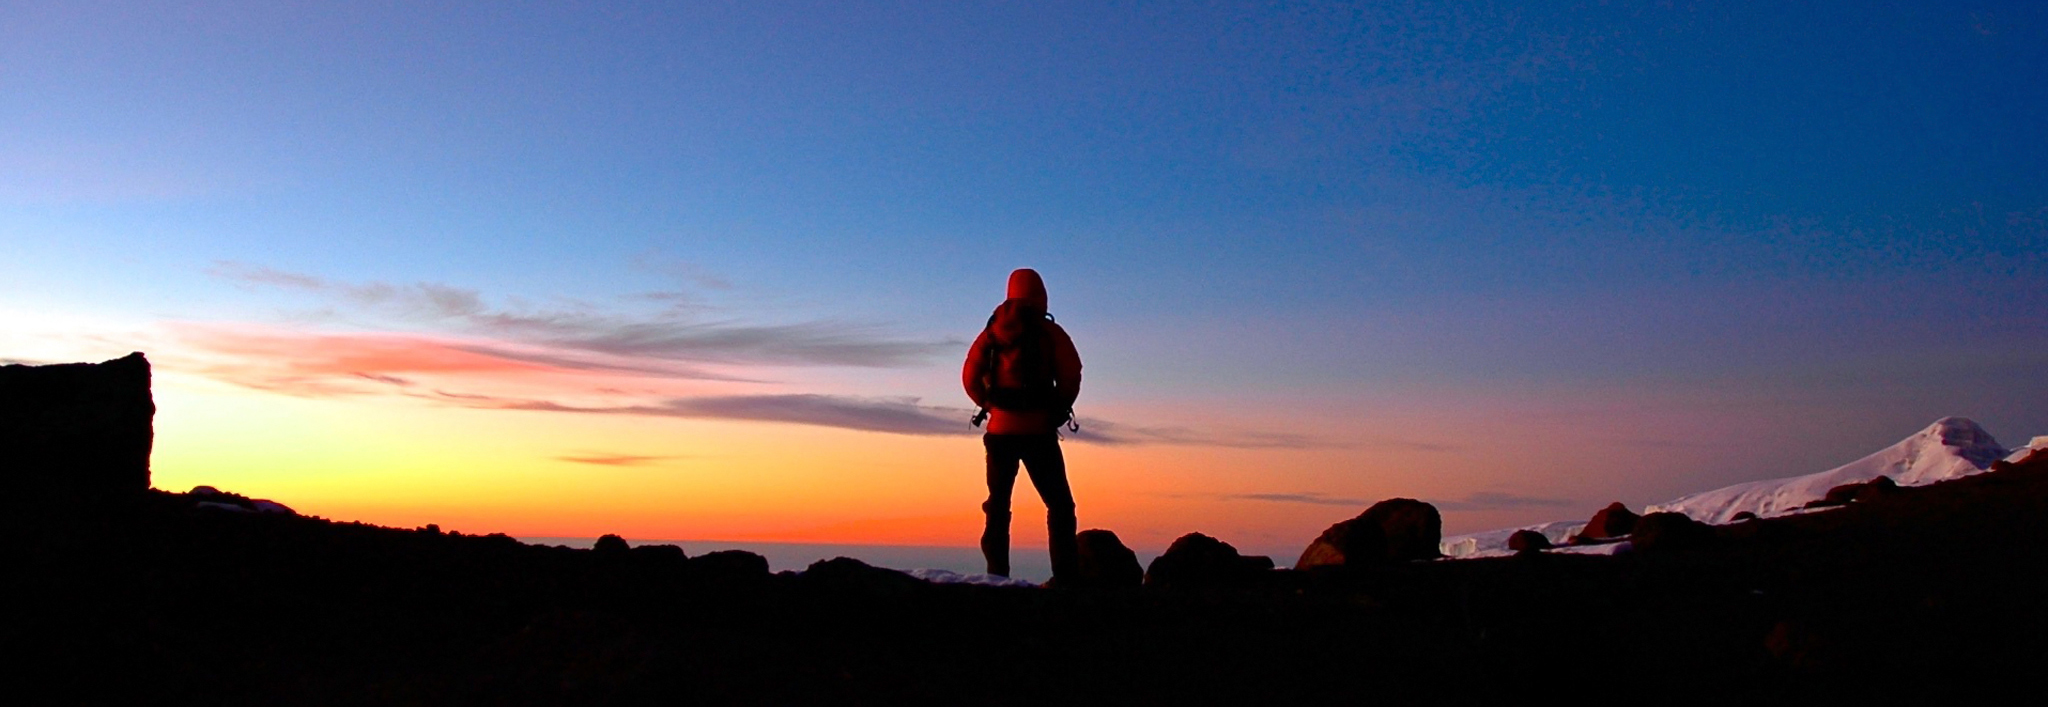 Photography_Header Kilimanjaro Summit © LoveAdventures